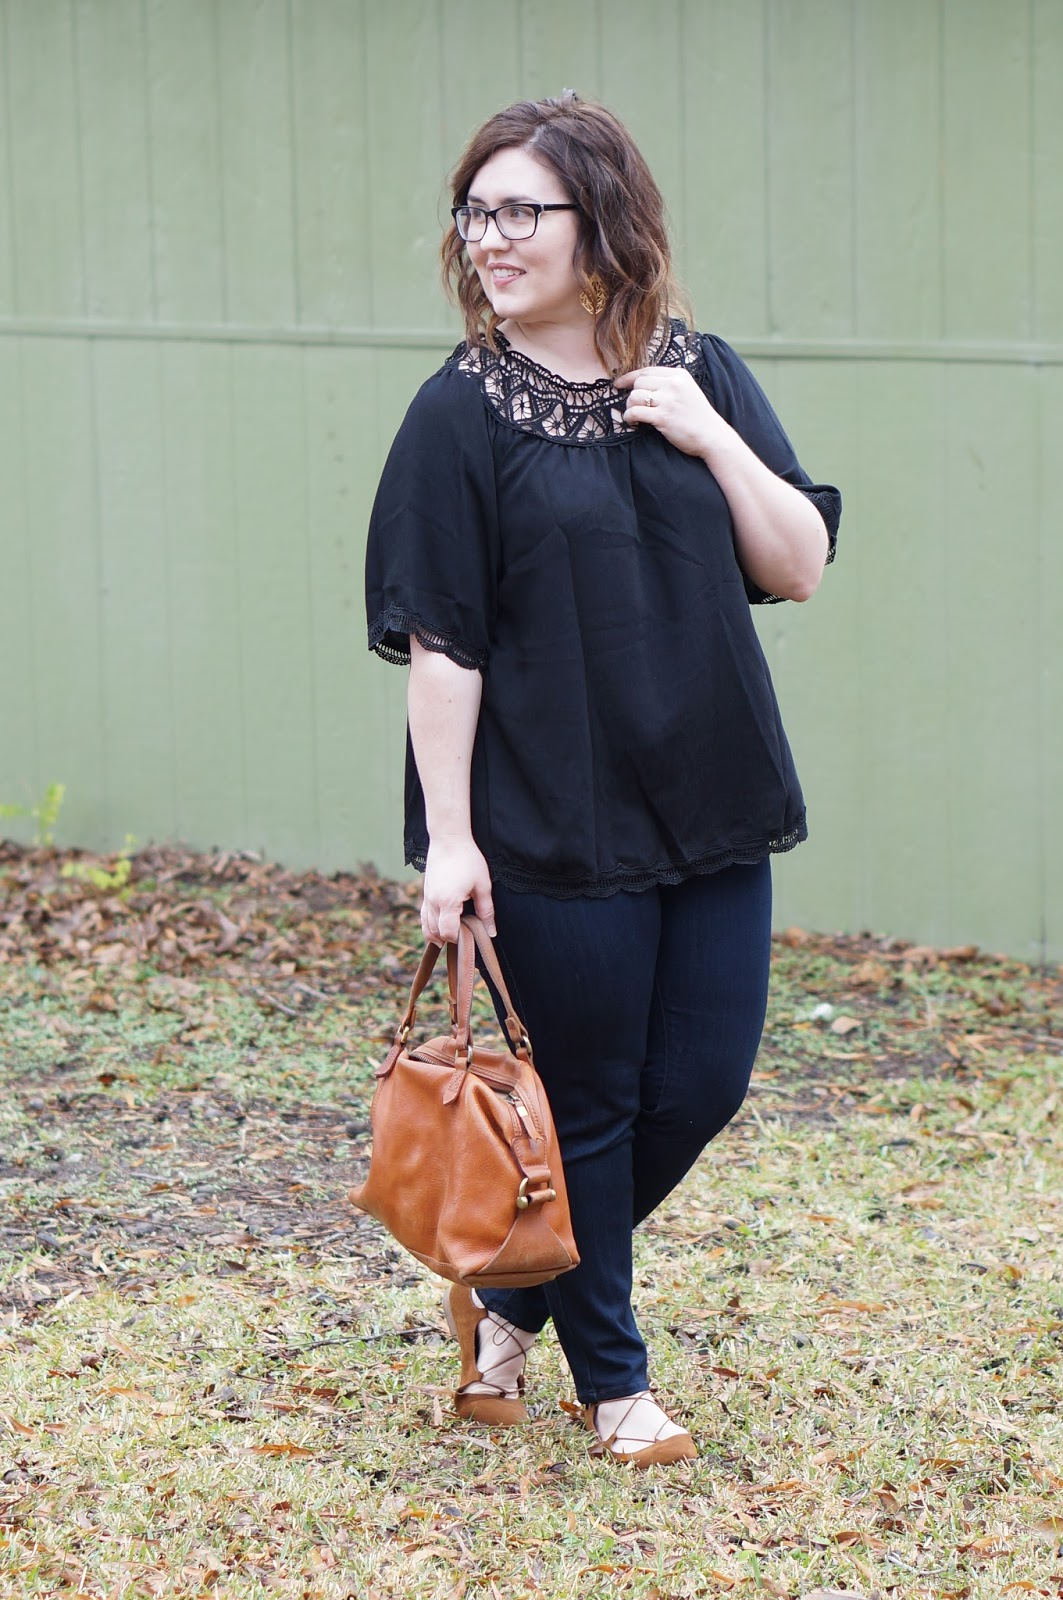 Rebecca Lately Zaful Off The Shoulder Black Top Just Black Ankle Jeans Stitch Fix Target Kady Flats Madewell Kensington Satchel